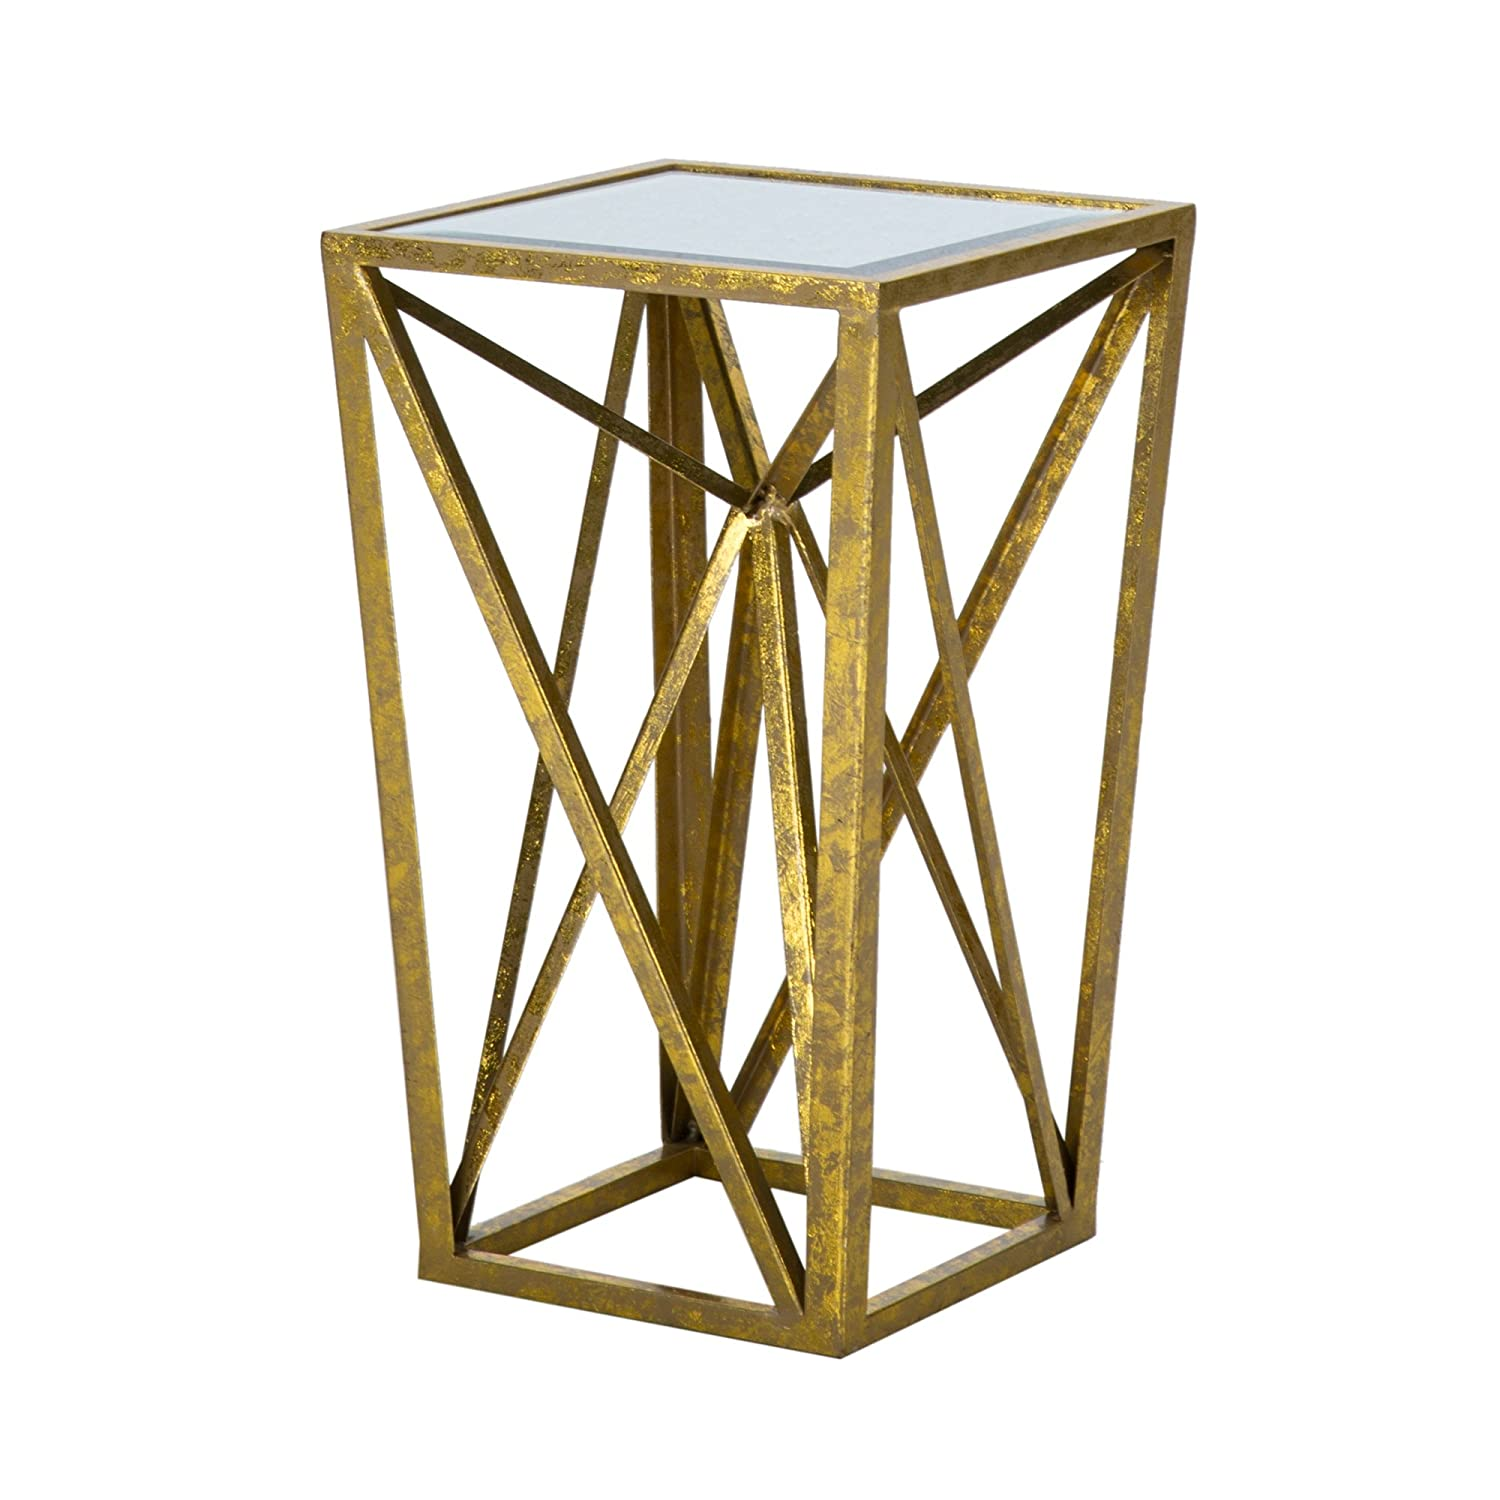 Great Amazon.com: Madison Park Angular Mirror Accent Table, Gold: Kitchen U0026 Dining